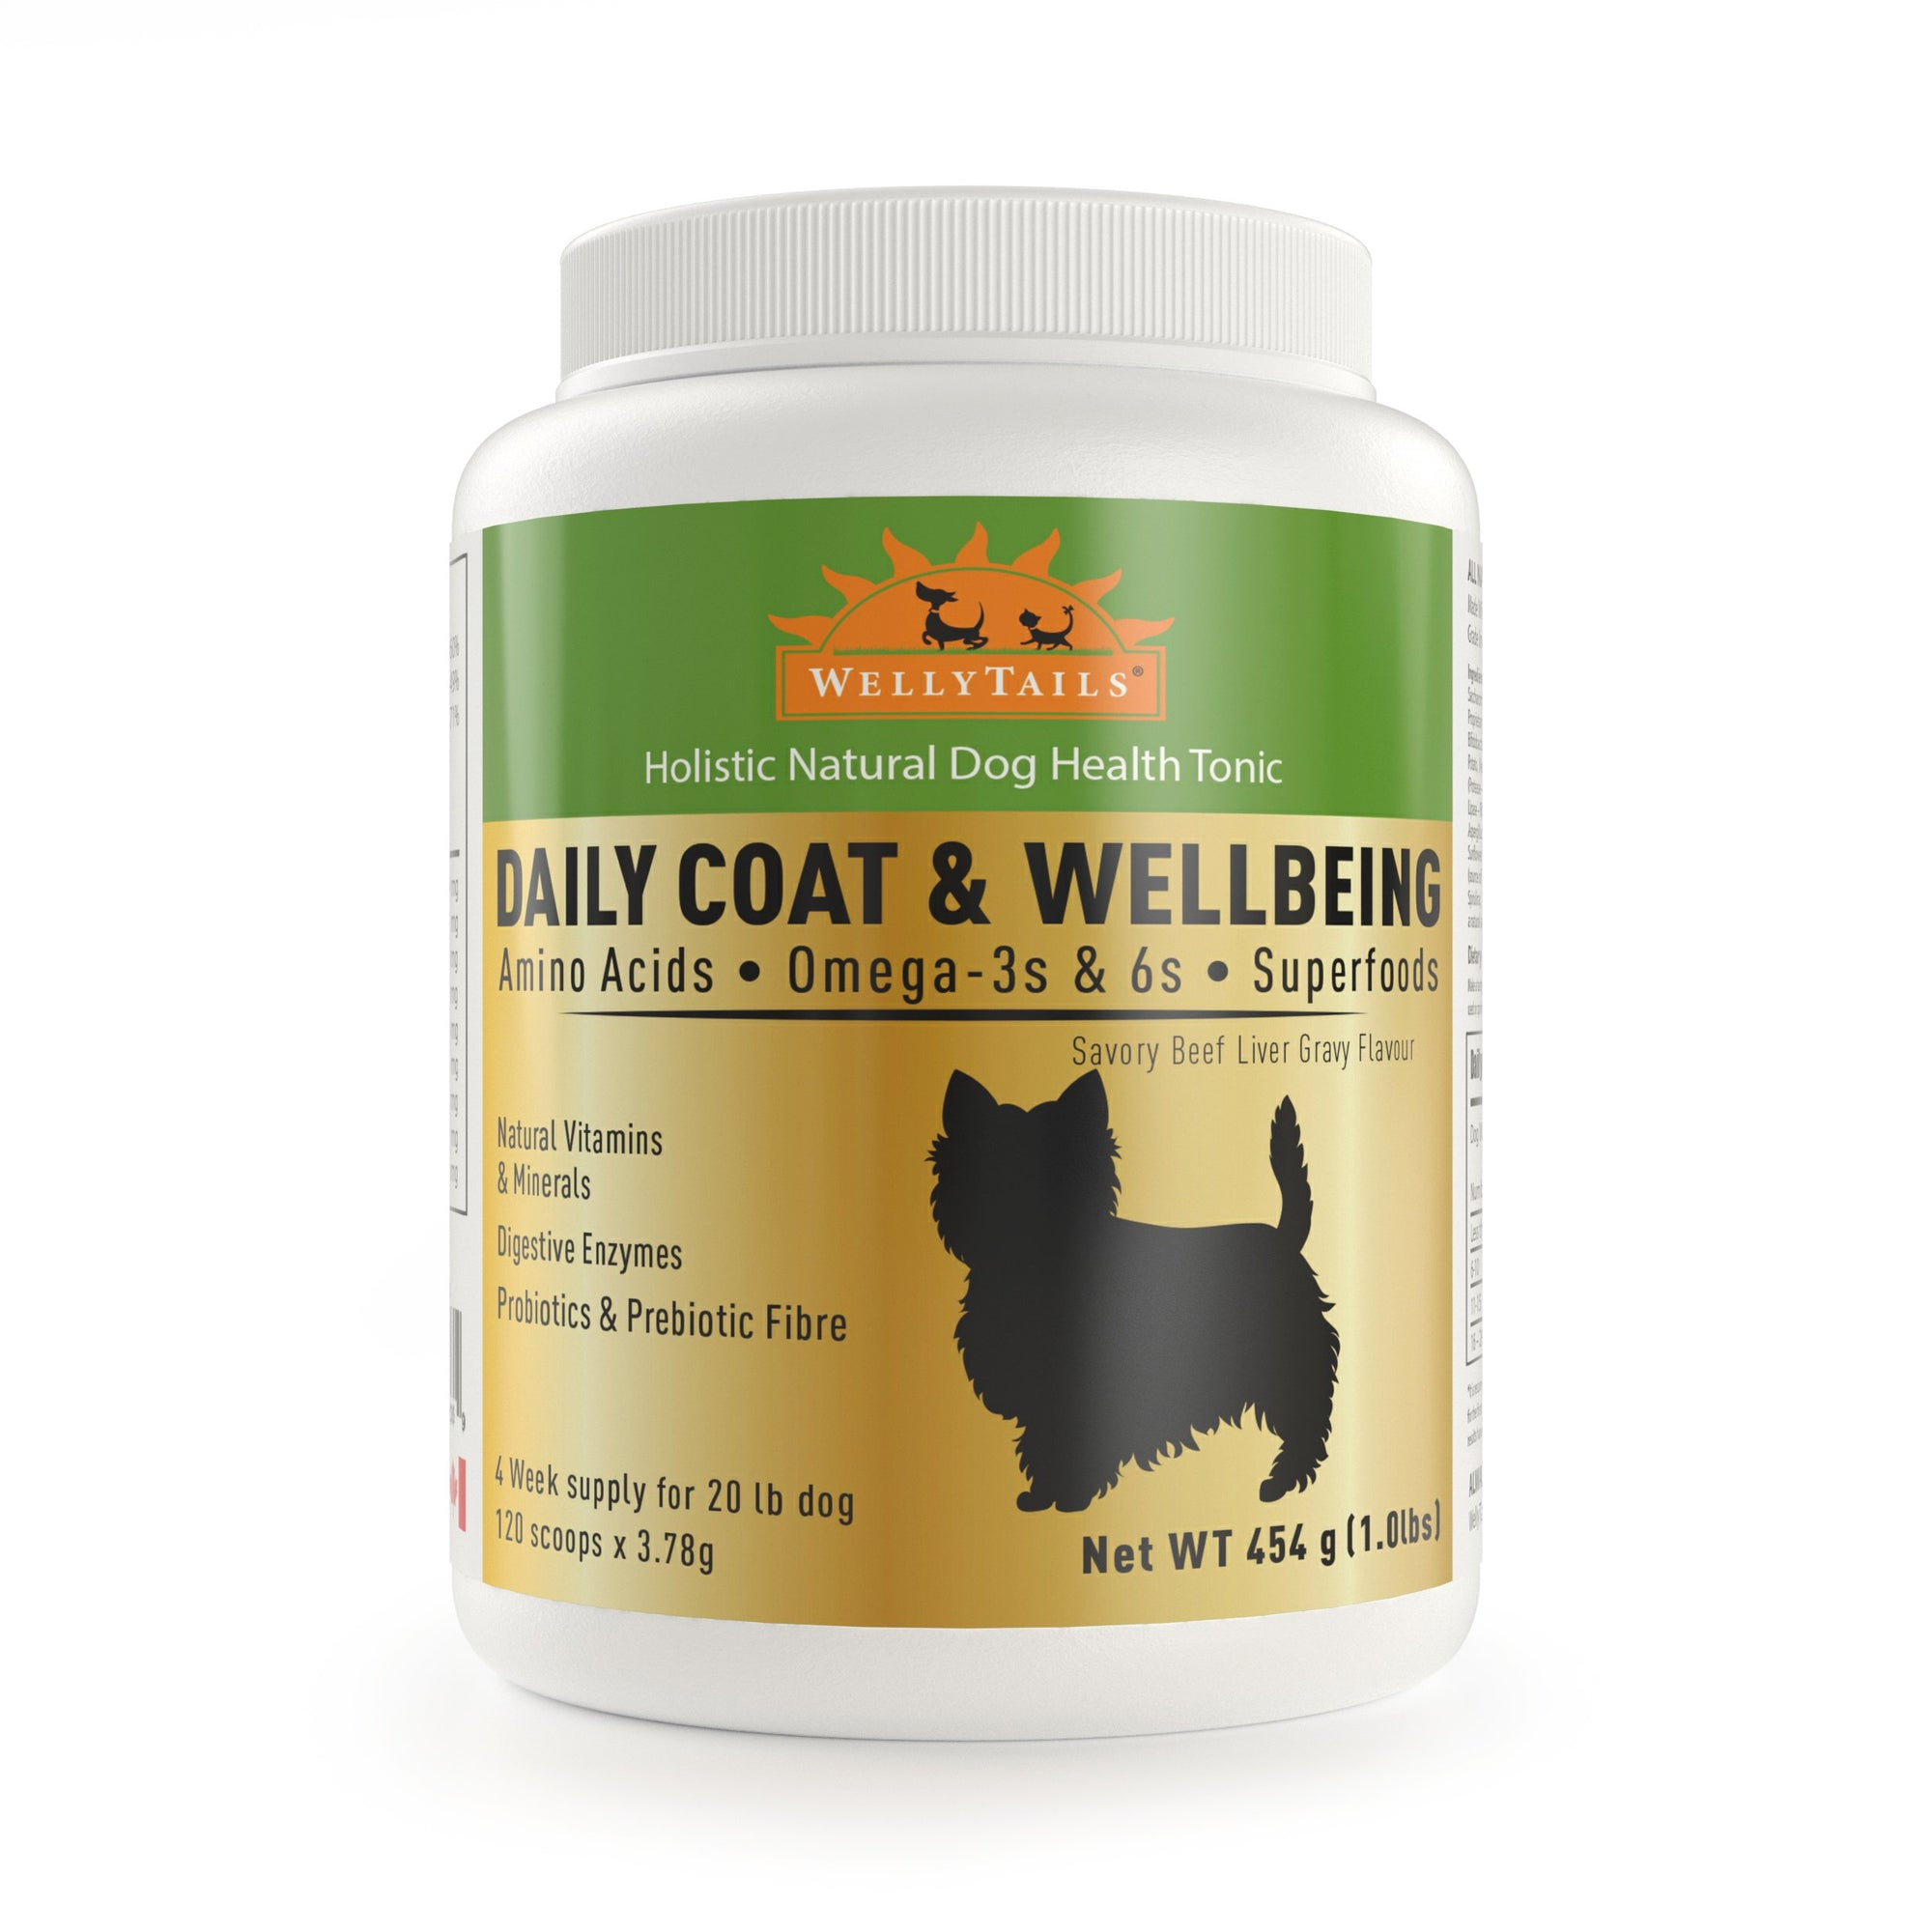 WELLYTAILS® DAILY COAT & WELLBEING - FOR SMALL DOGS  454 grams (1 Lb.)  MADE IN CANADA